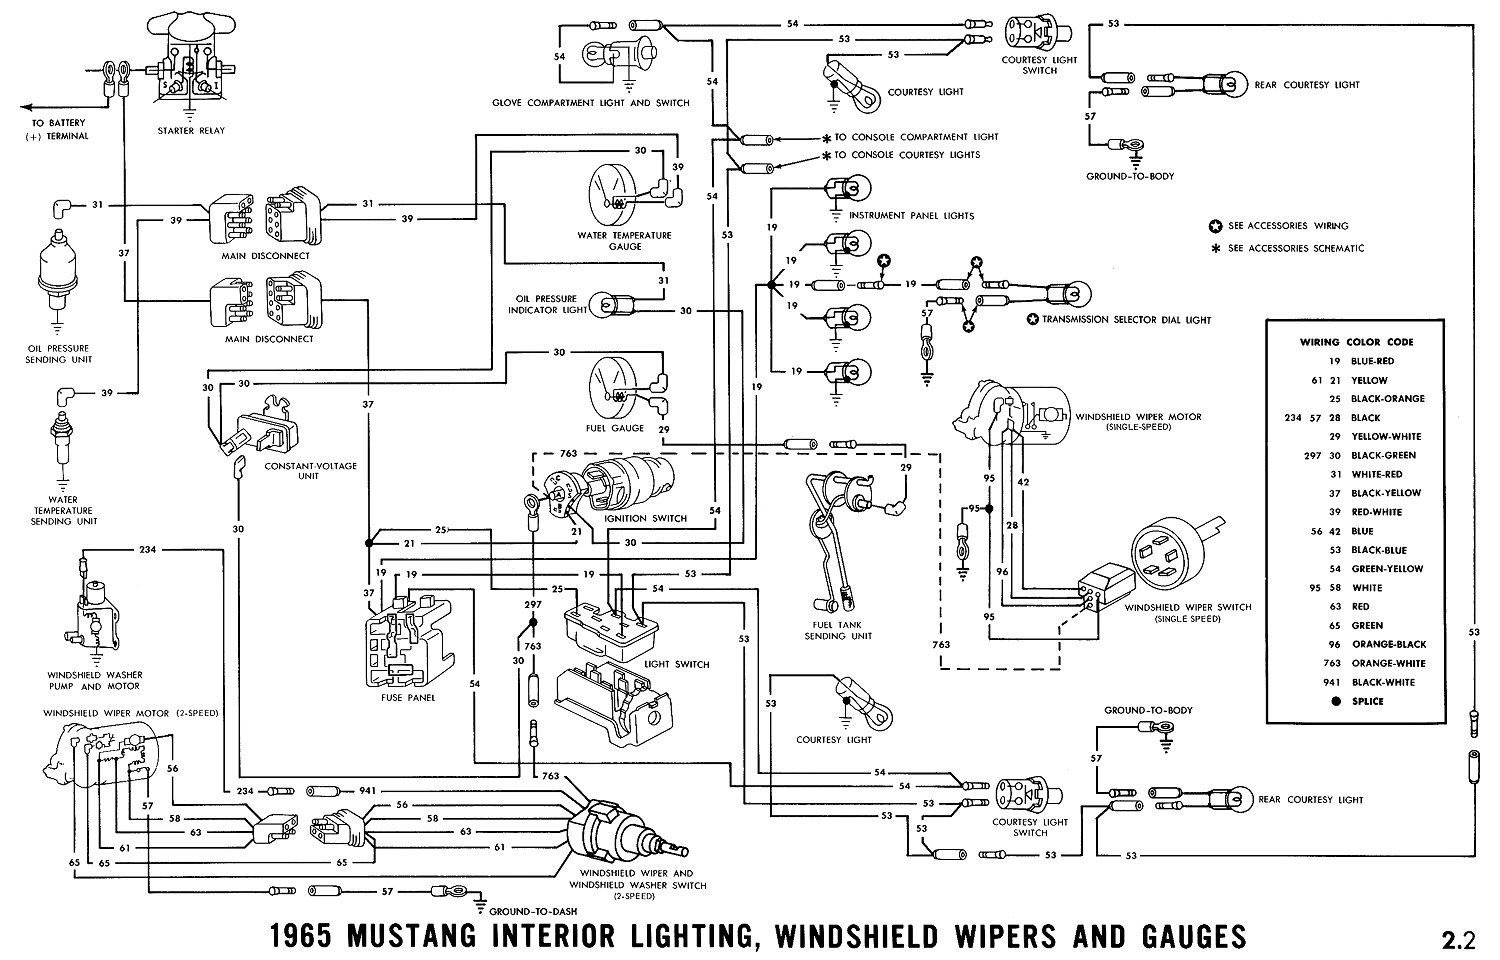 1965g 1989 mustang wiring diagram 1993 mustang radio wiring diagram 1969 mustang dash wiring diagram at fashall.co